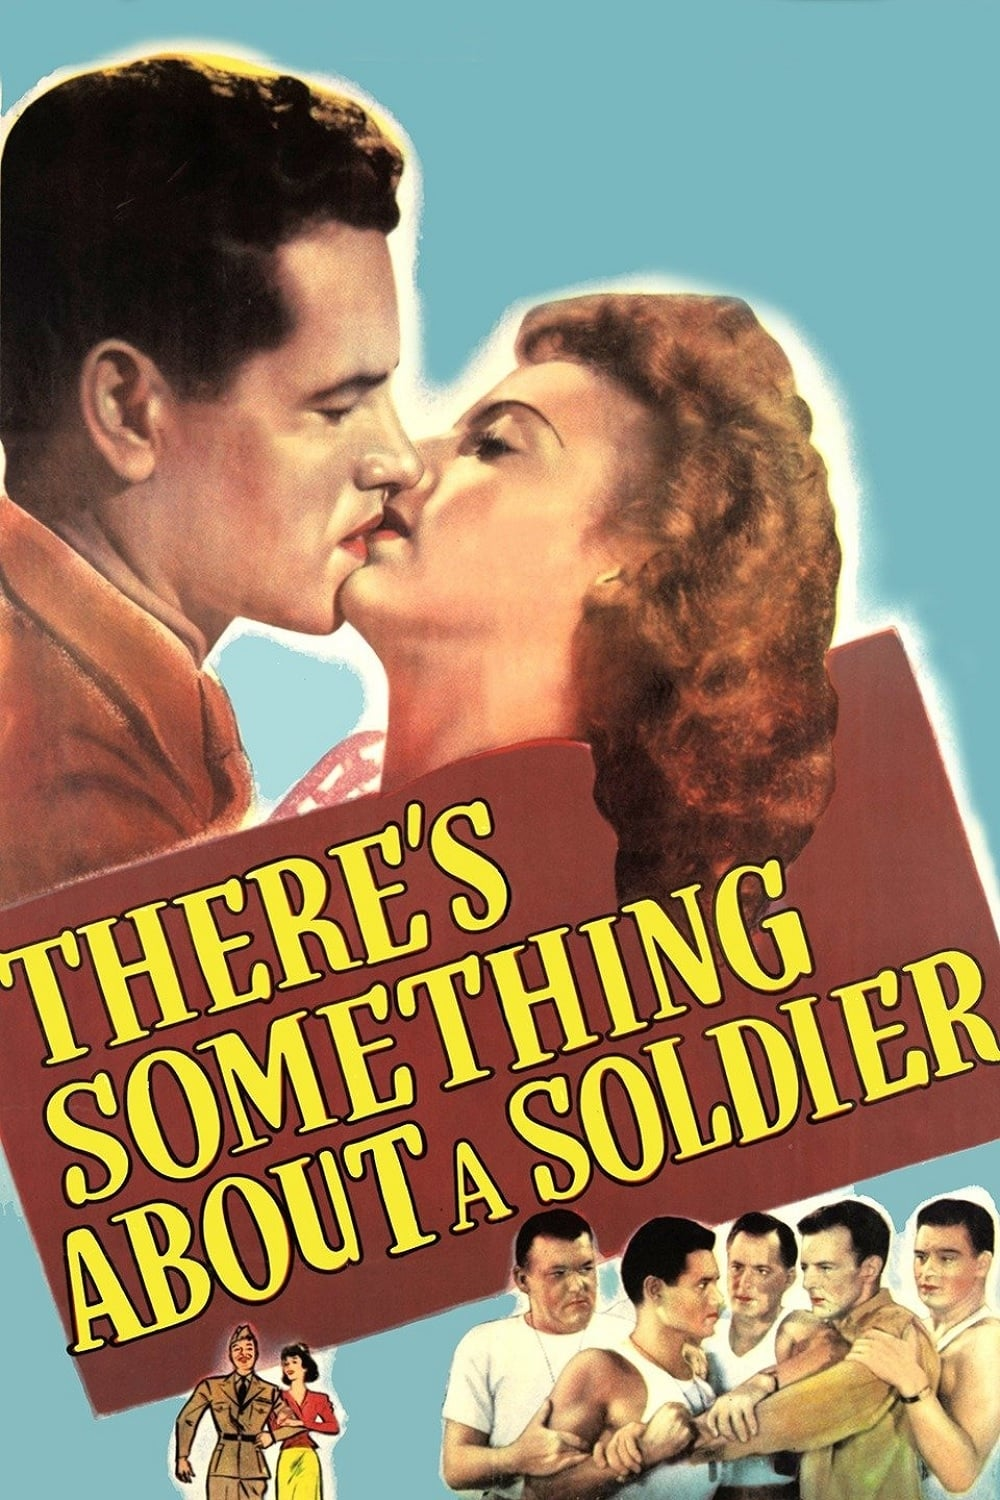 There's Something About a Soldier poster